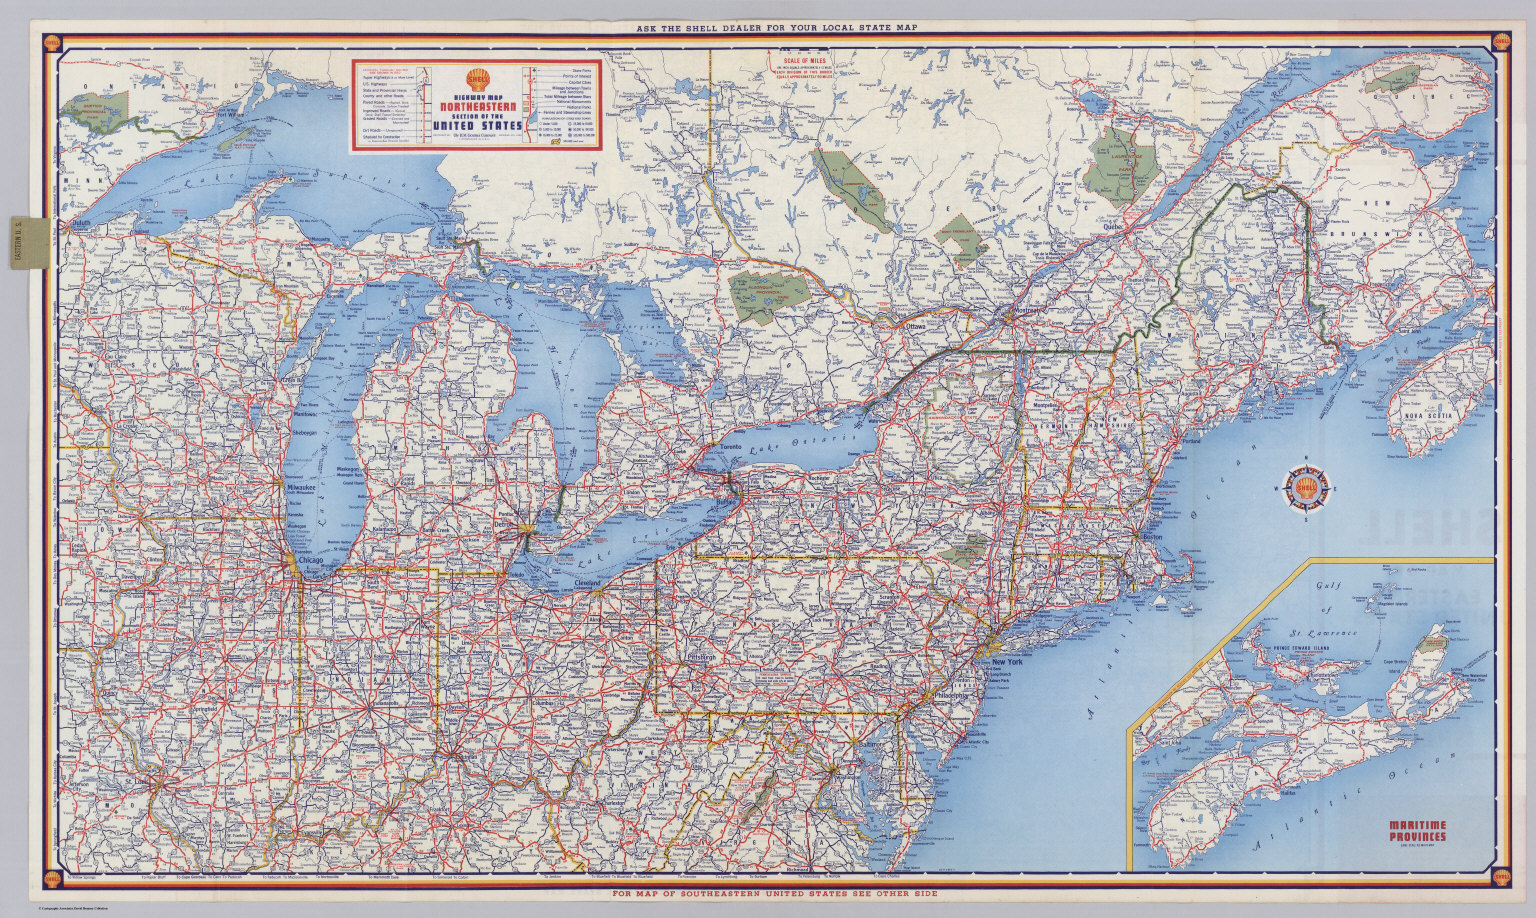 Shell Highway Map Northeastern Section Of The United States - Map of the eastern us